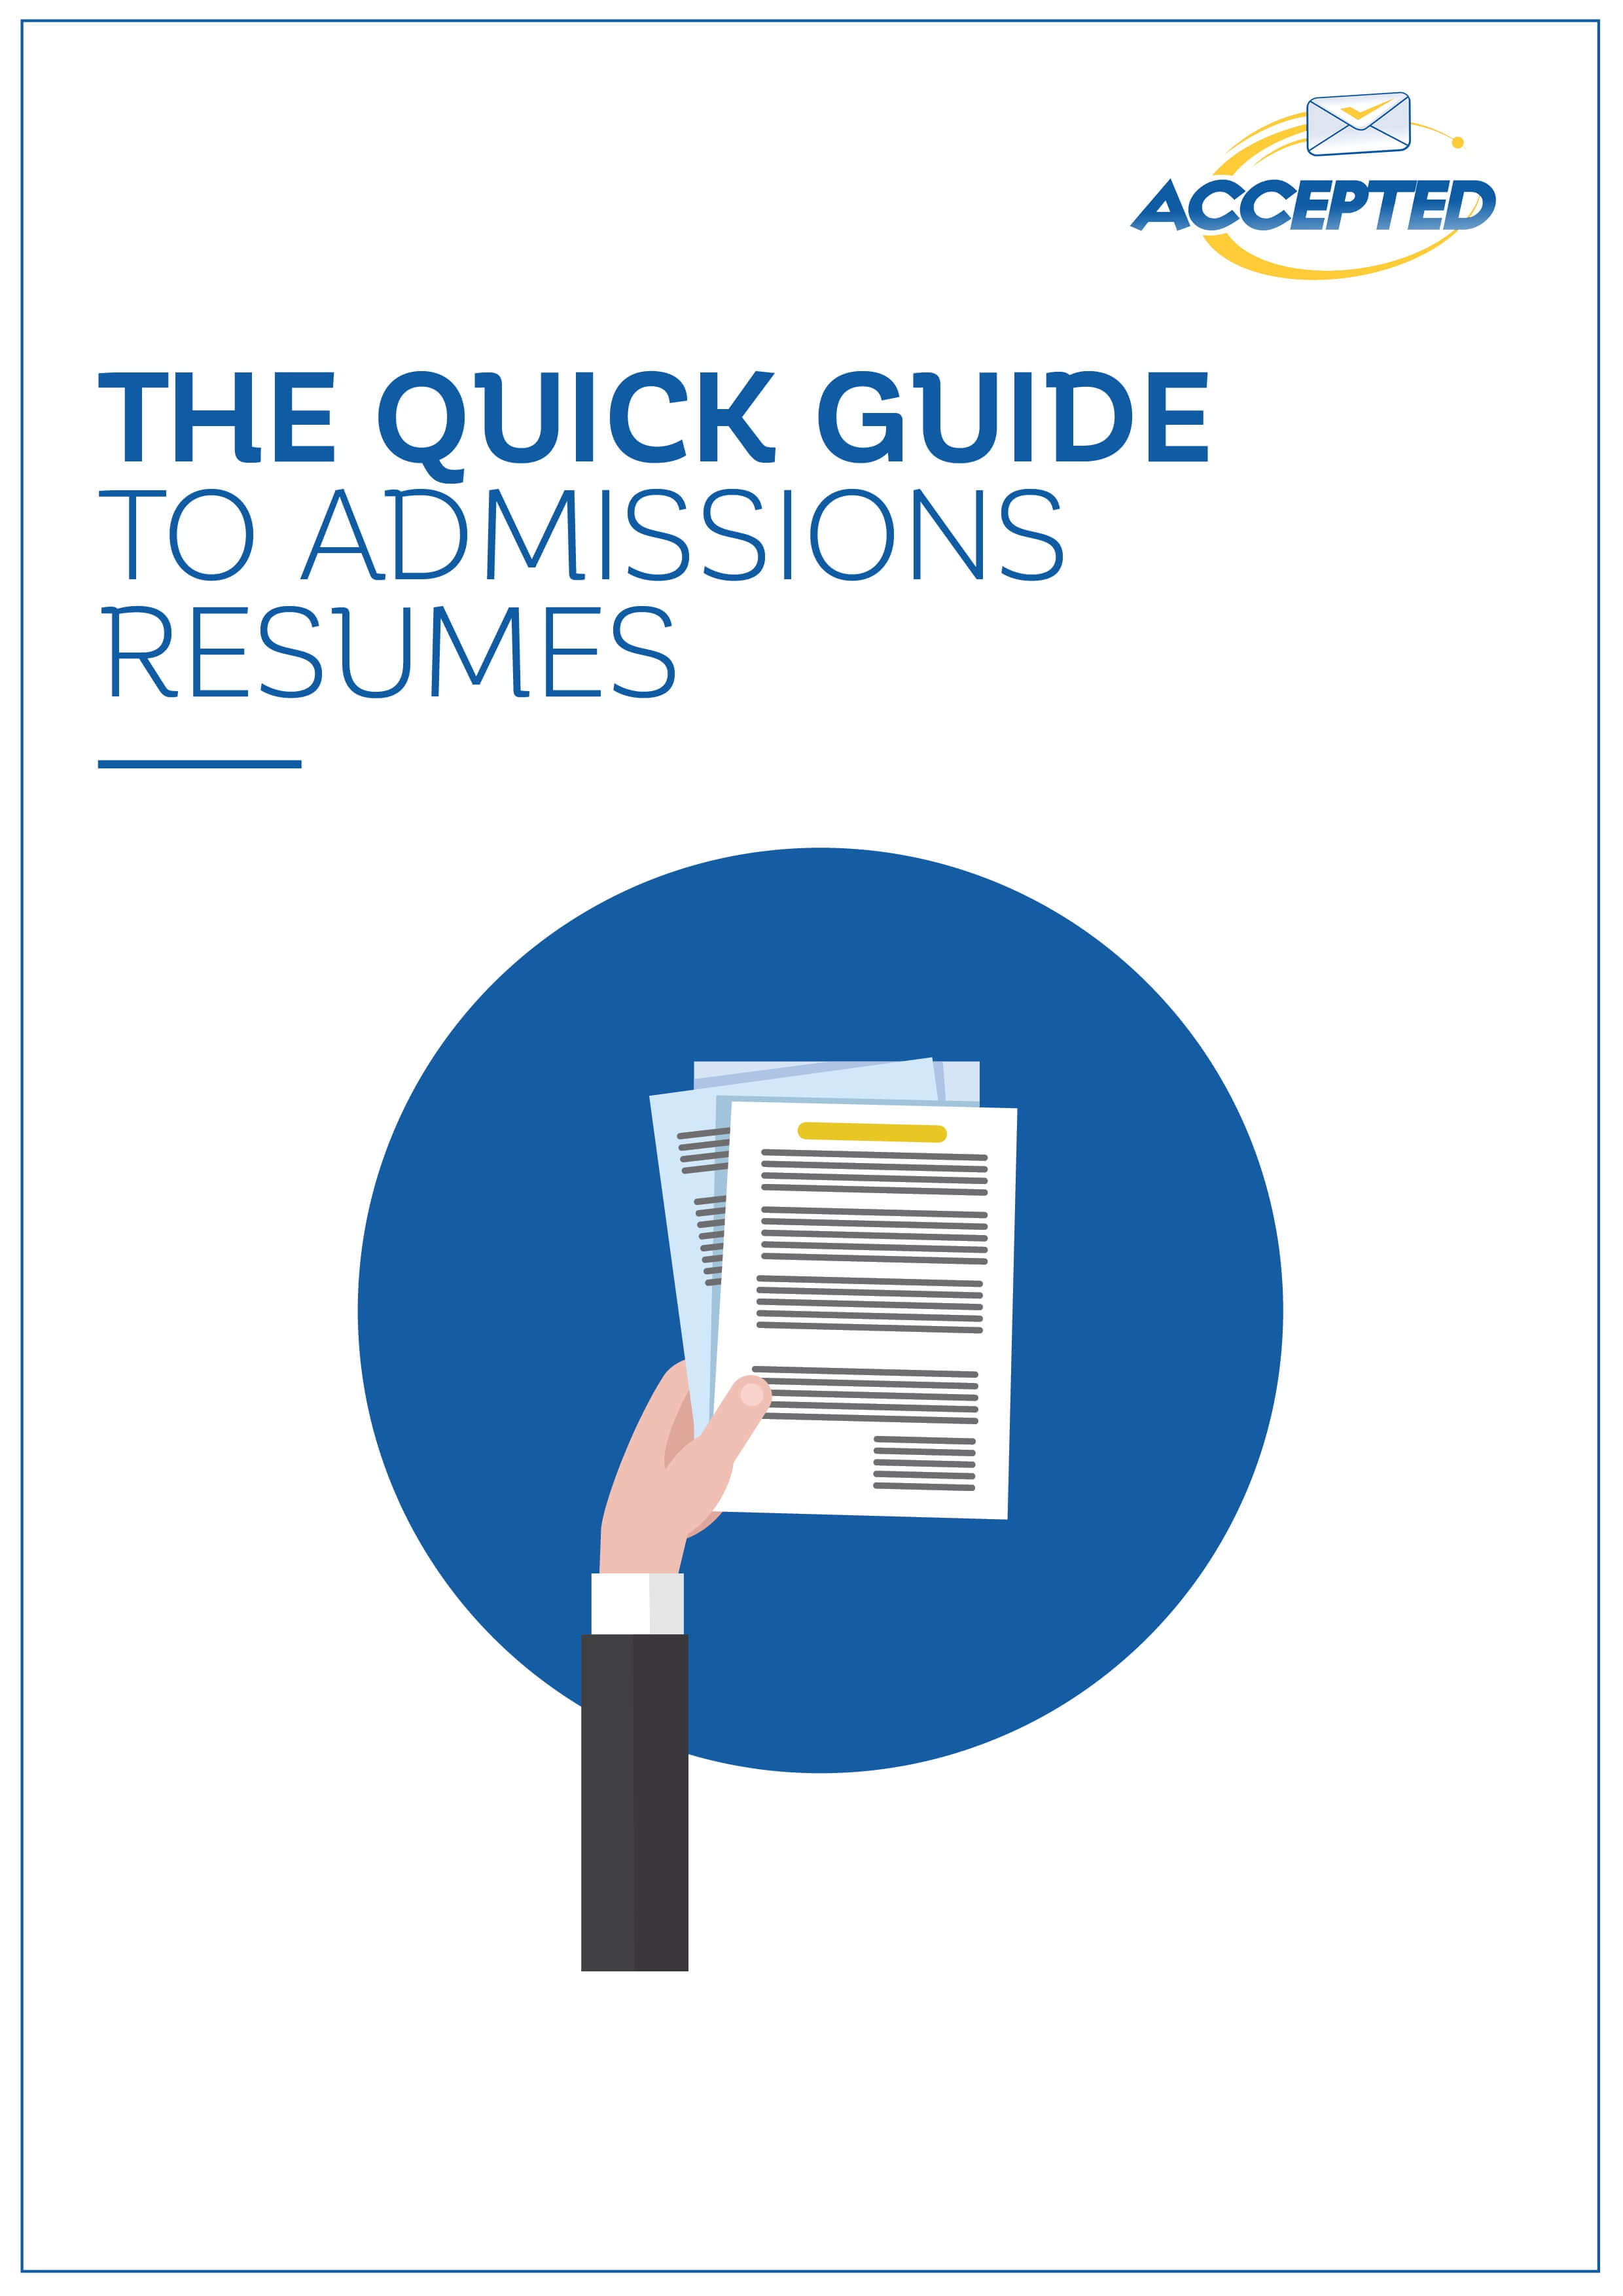 The Quick Guide to Admissions Resumes